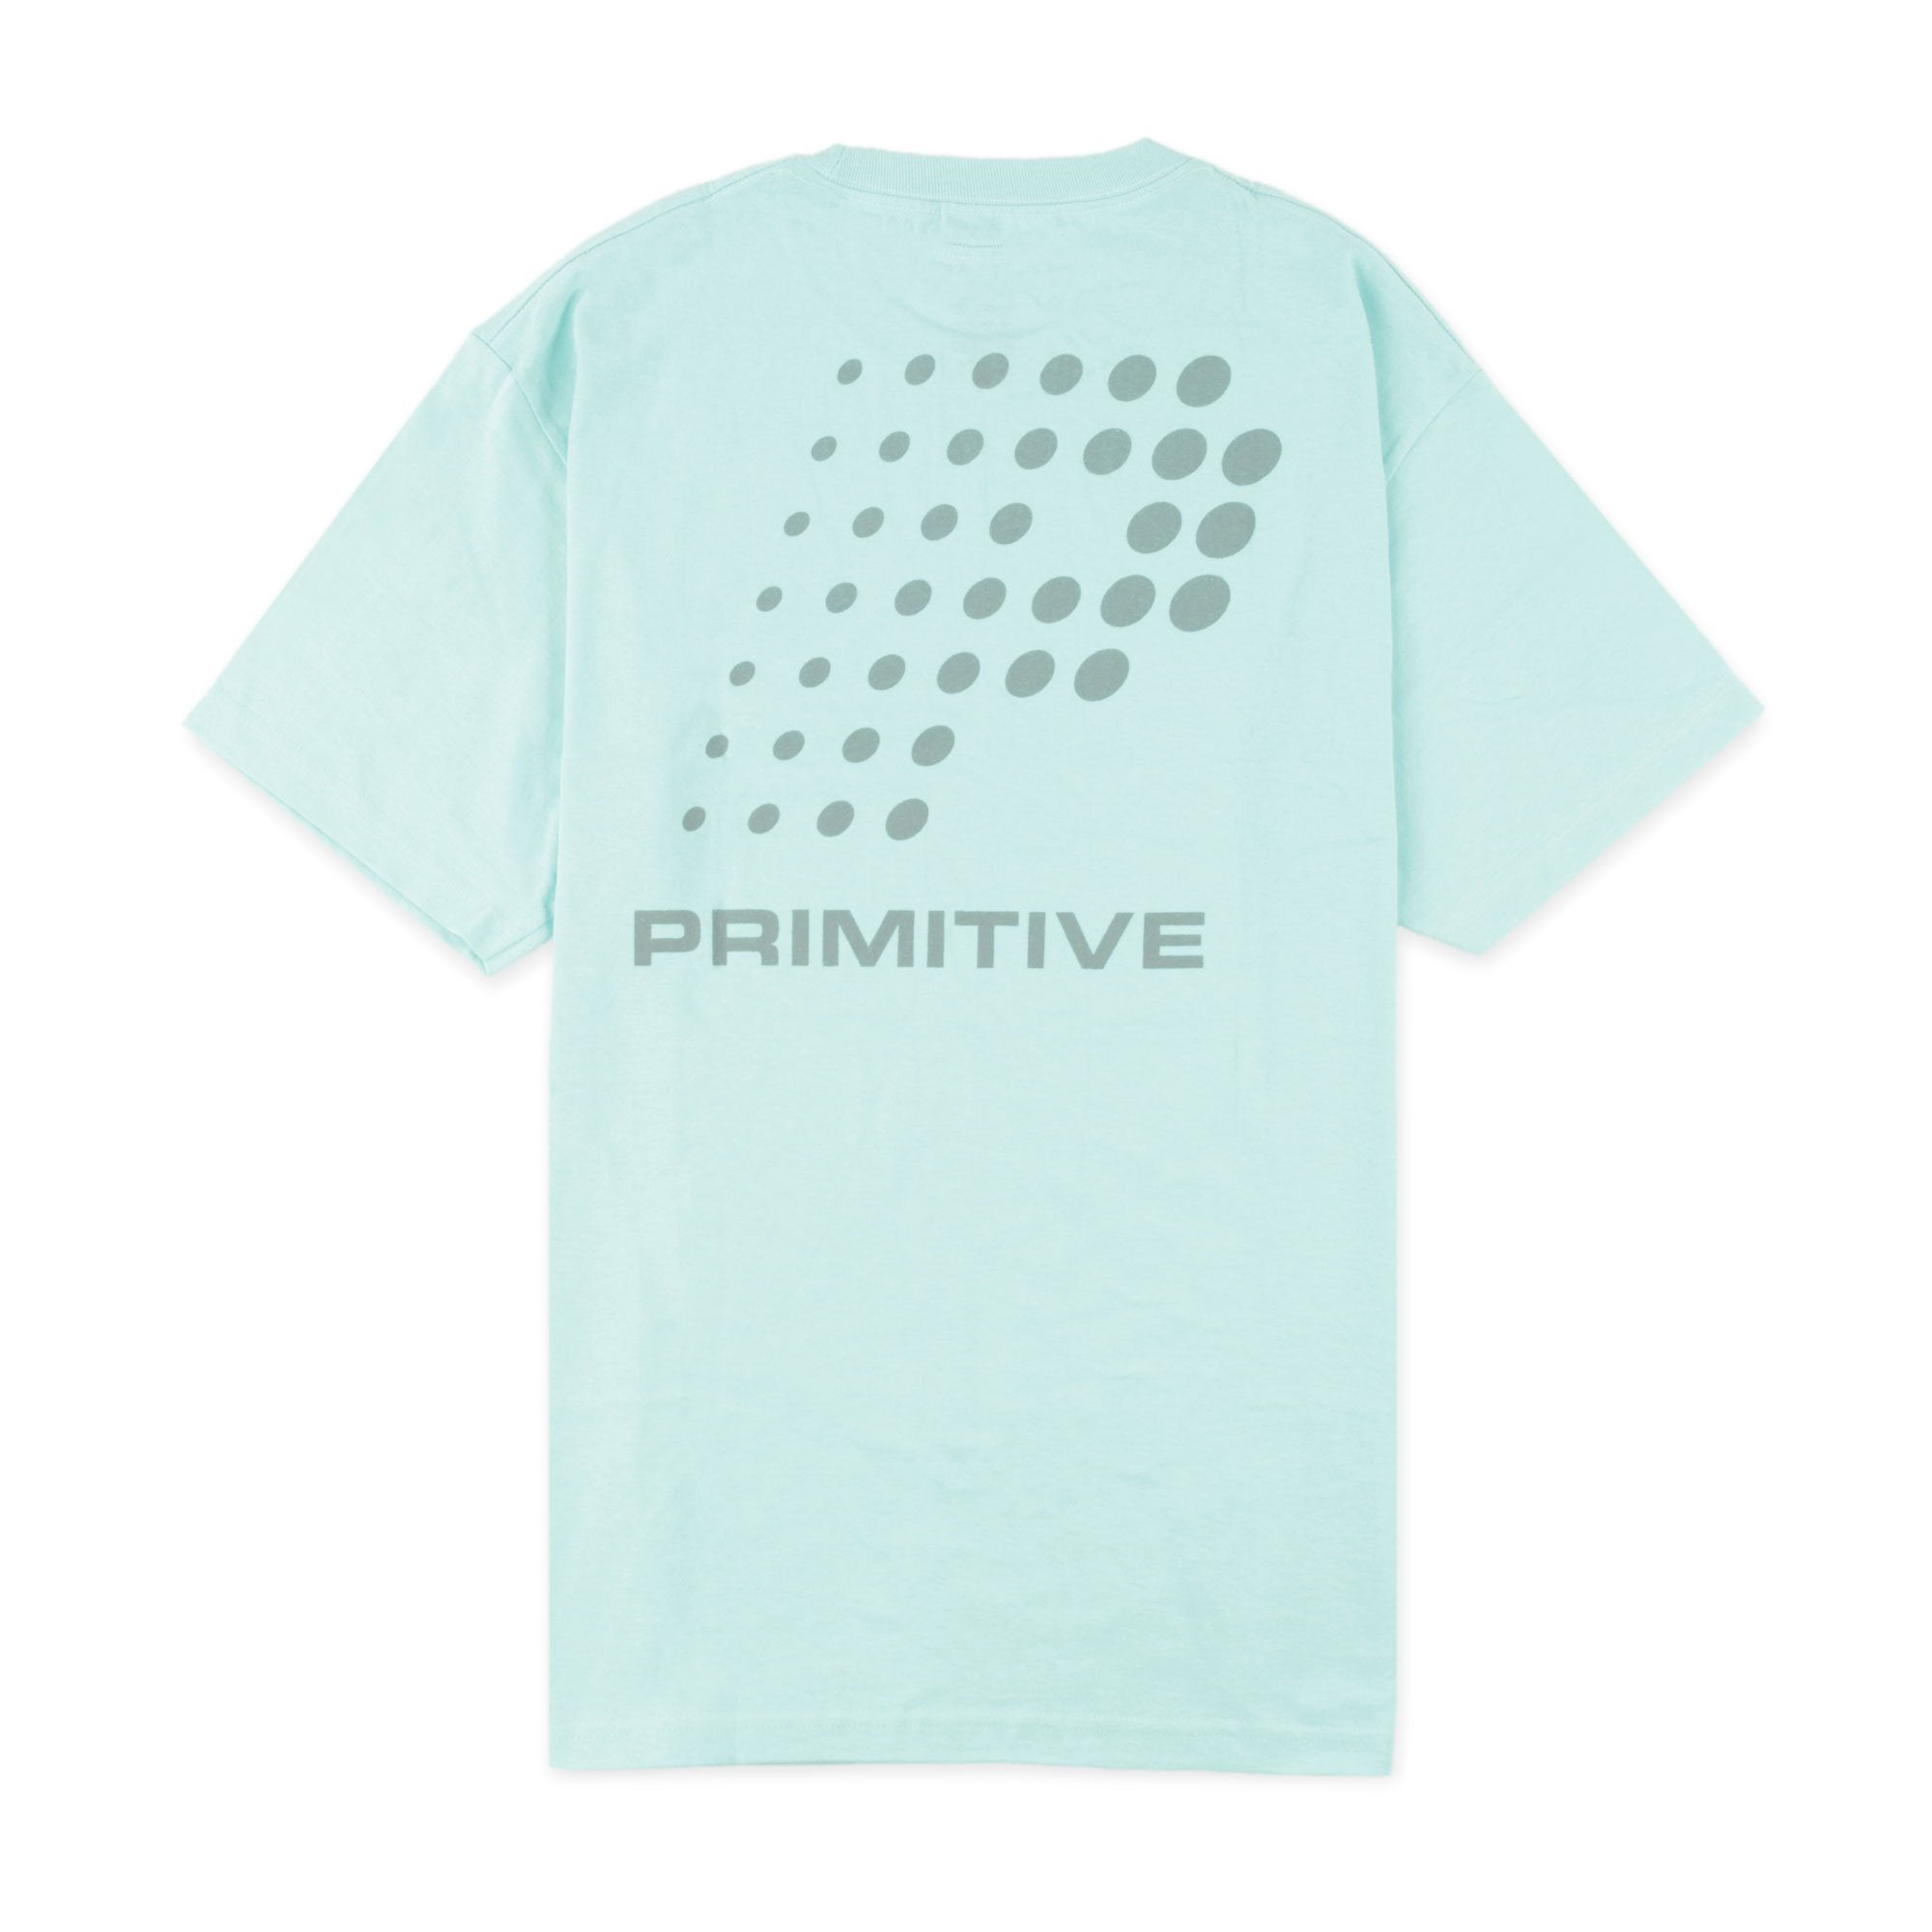 Primitive VHS Tee Product Photo #1